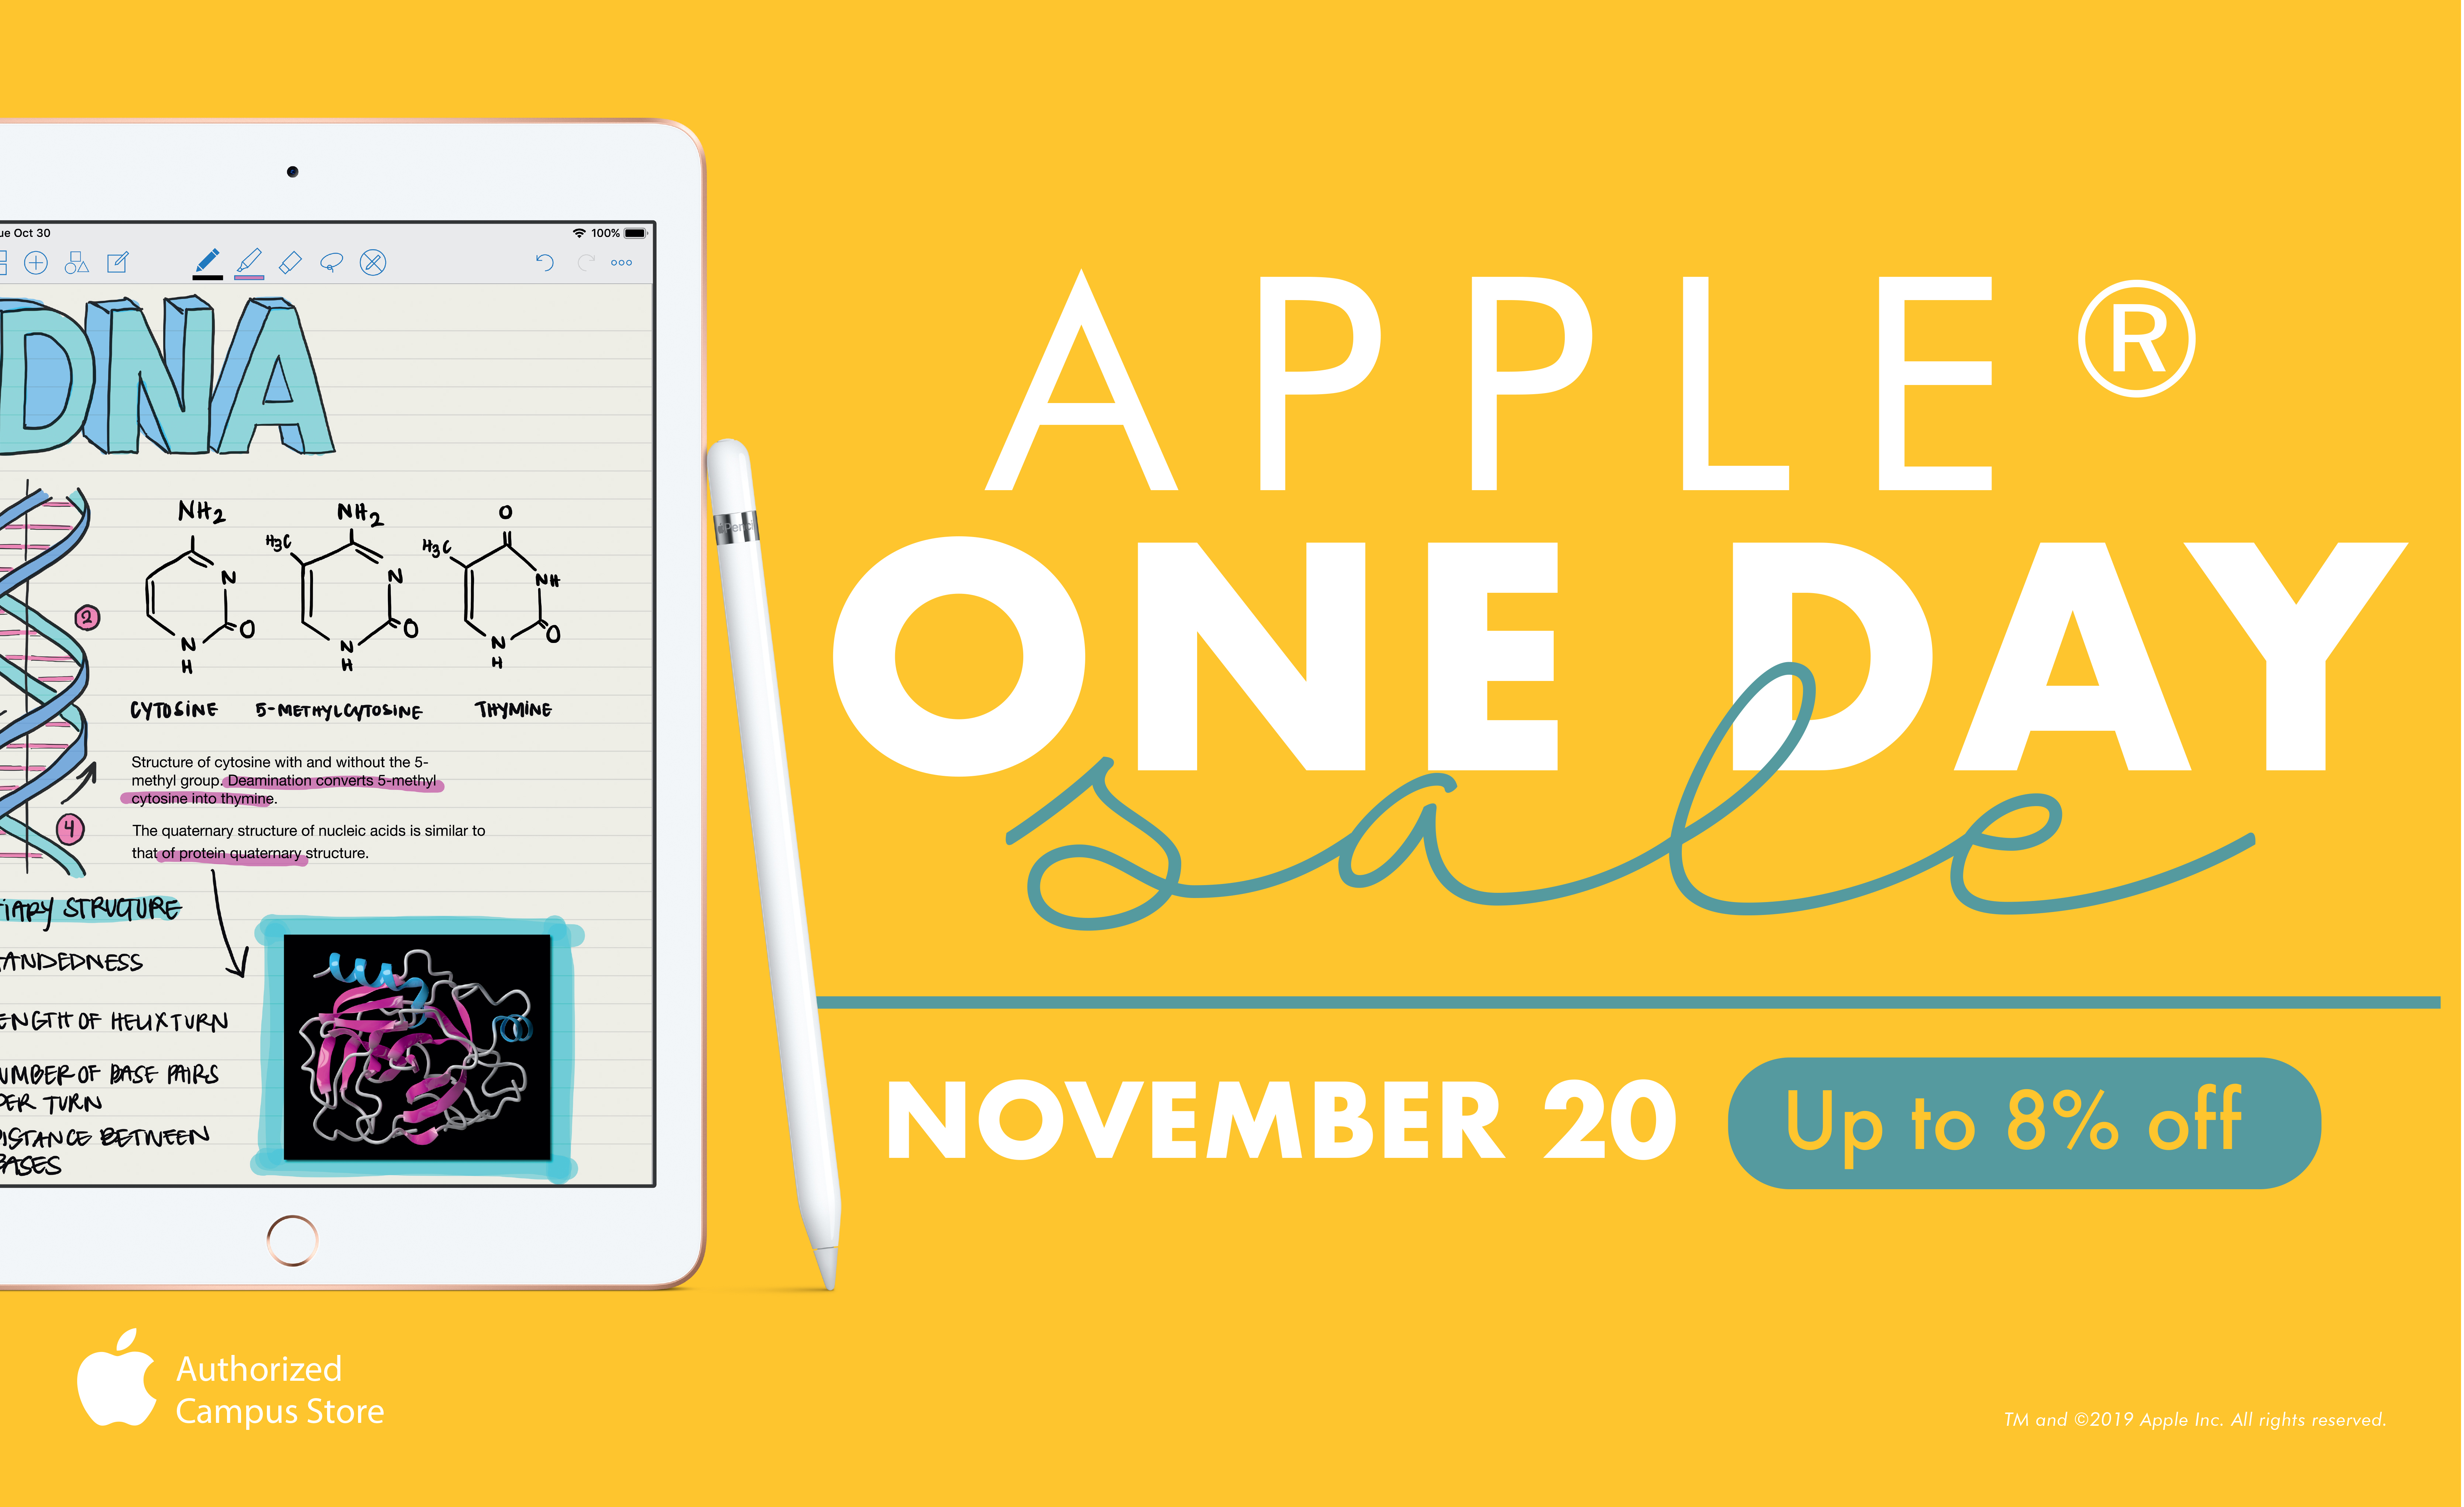 Apple One Day Sale. Nov 20th. Up to 8% off.